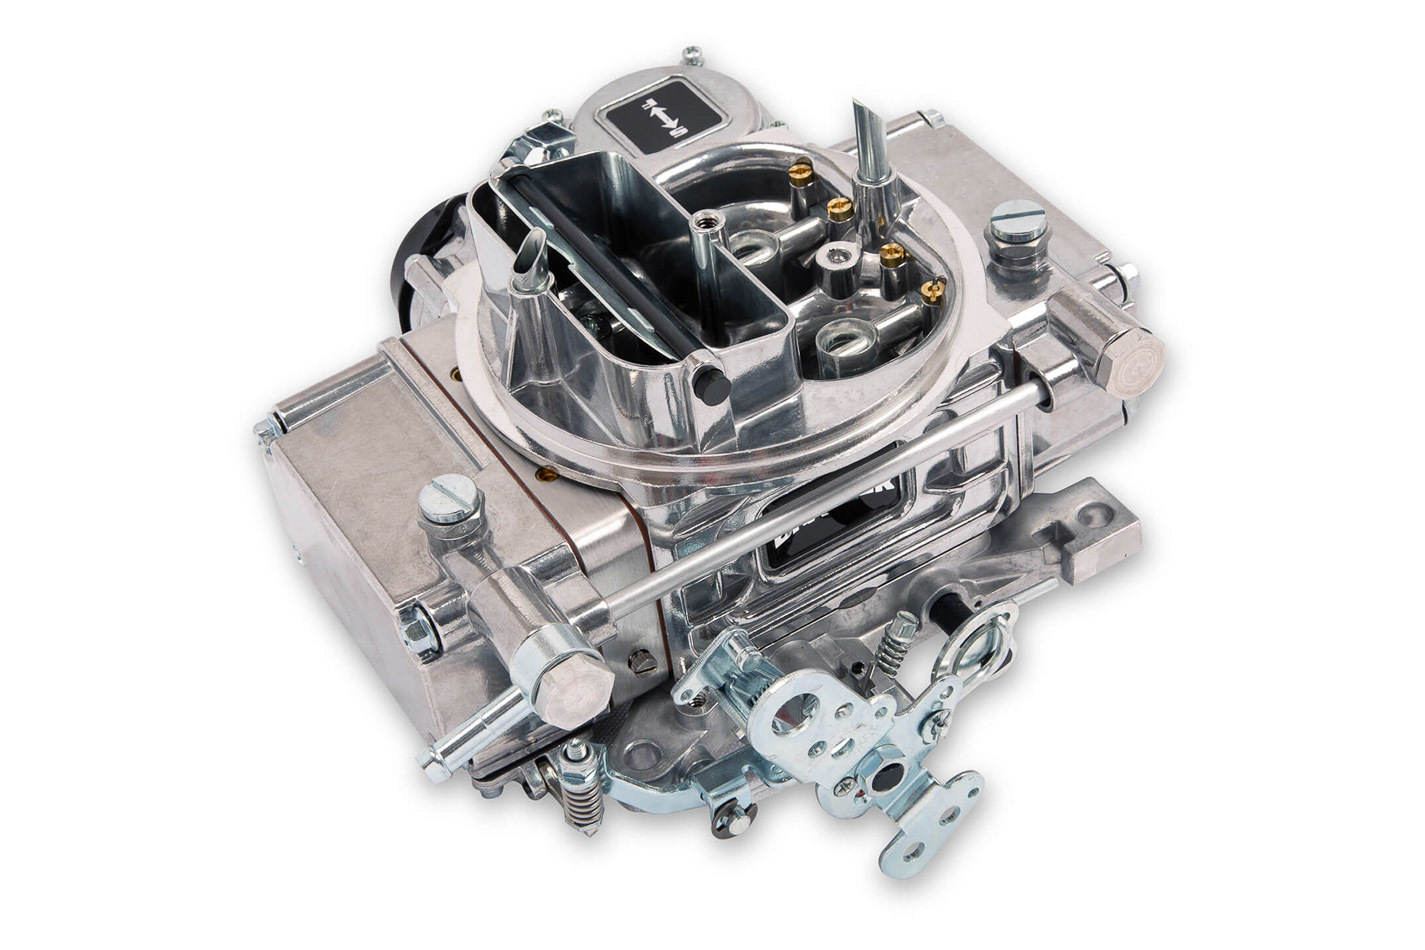 Quick Fuel BR-67270 Carburetor, Brawler Street, 4-Barrel, 600 CFM, Square Bore, Electric Choke, Vacuum Secondary, Single Inlet, Polished, Each